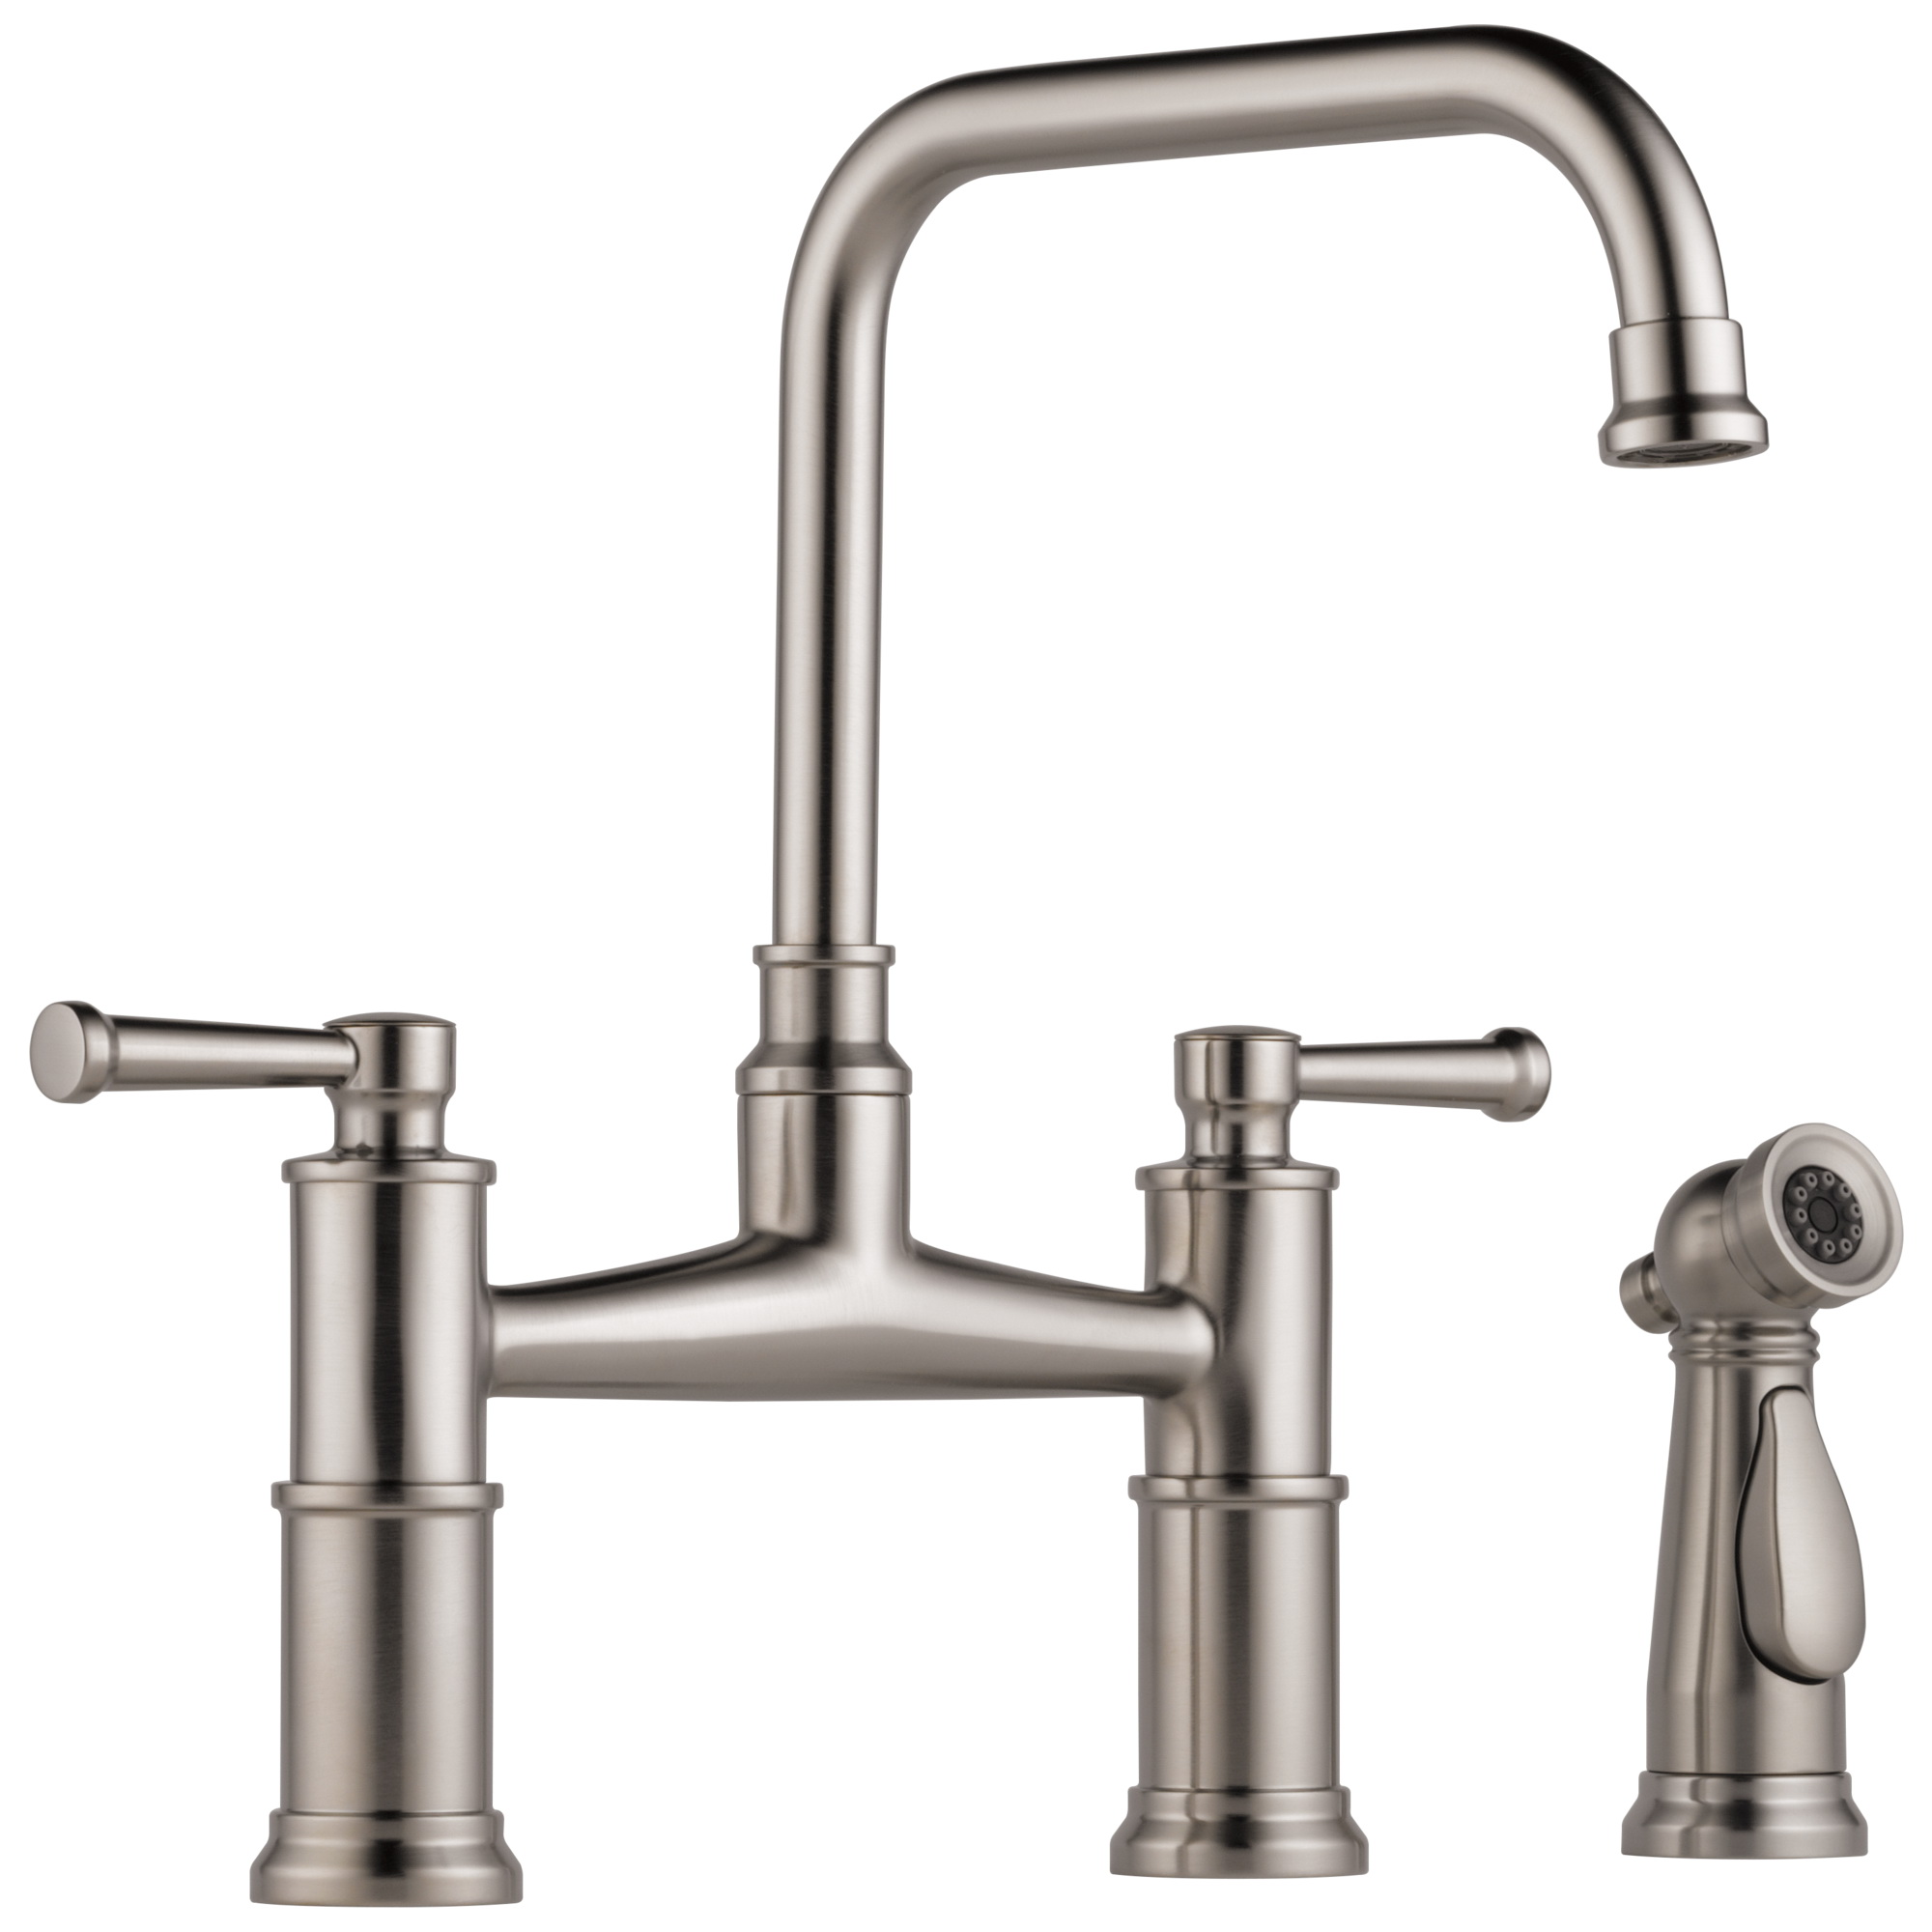 kitchen bridge faucet apc with htm rohl com u h faucets perrin qualitybath rowe sidespray product